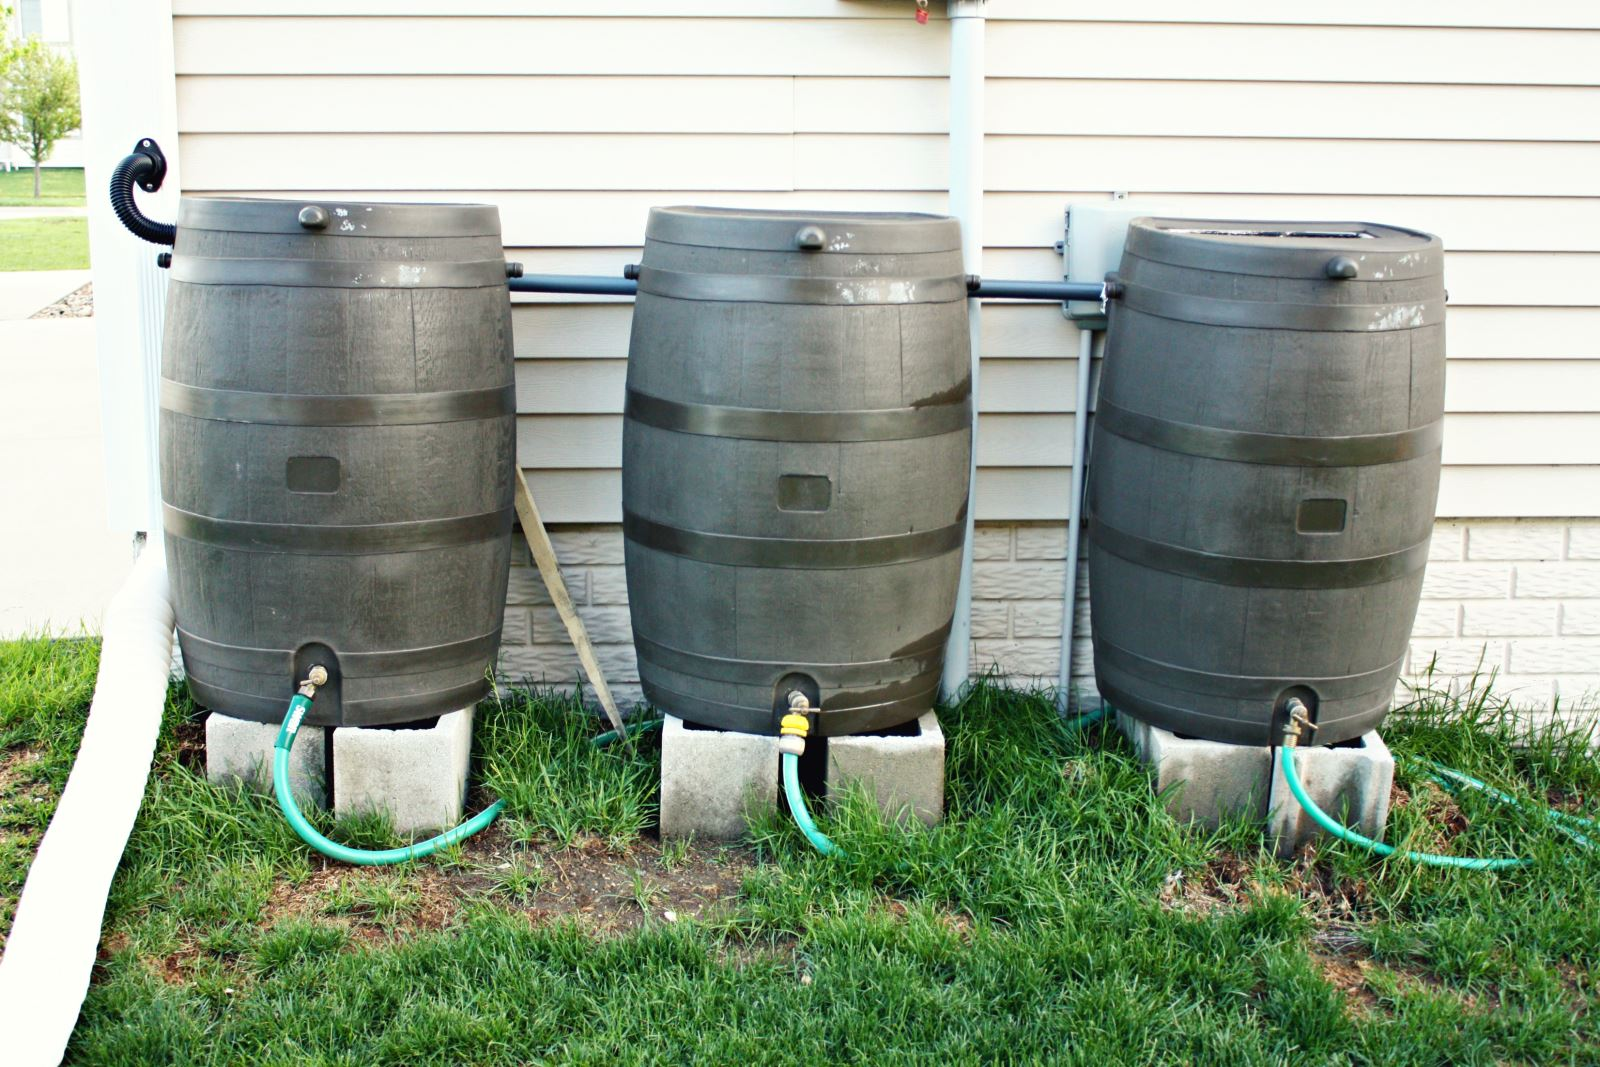 Rwra Hosting Rain Barrel Workshop Owensboro Living